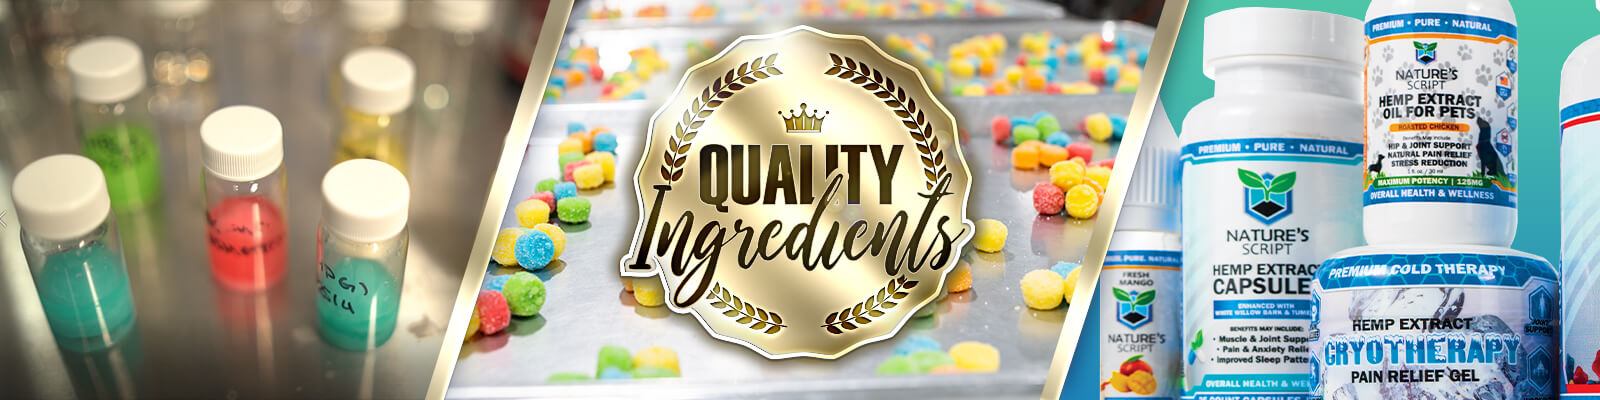 Quality CBD ingredients banner